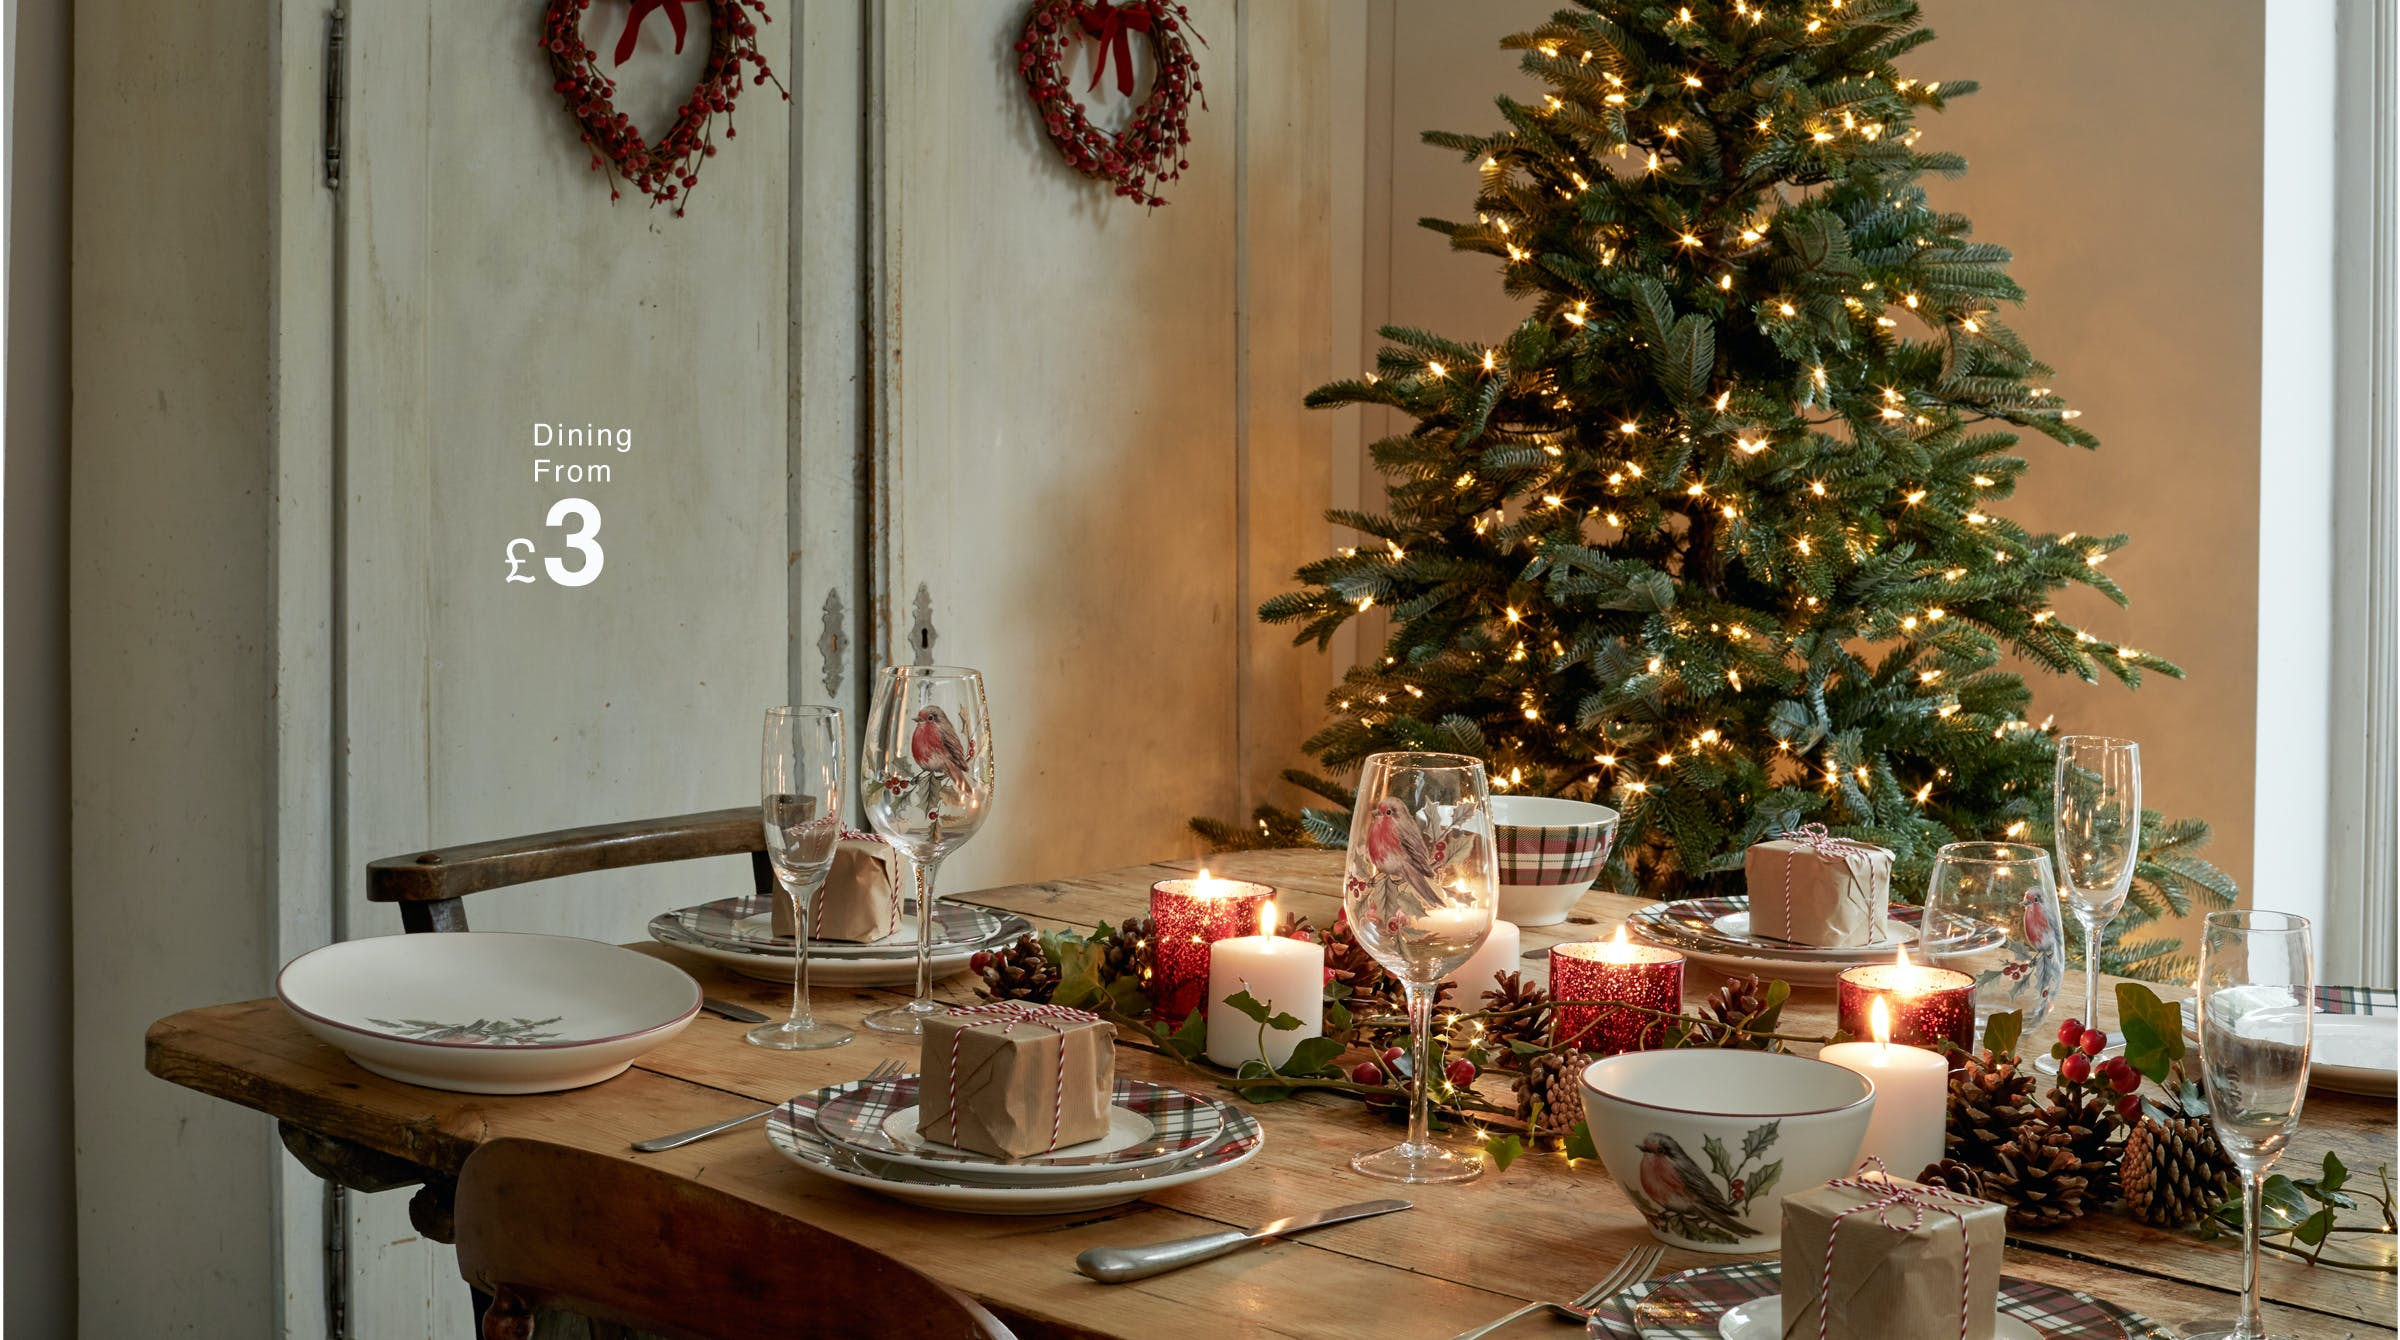 decorating your dining room. SHOP CHRISTMAS DINING Decorating Your Dining Room